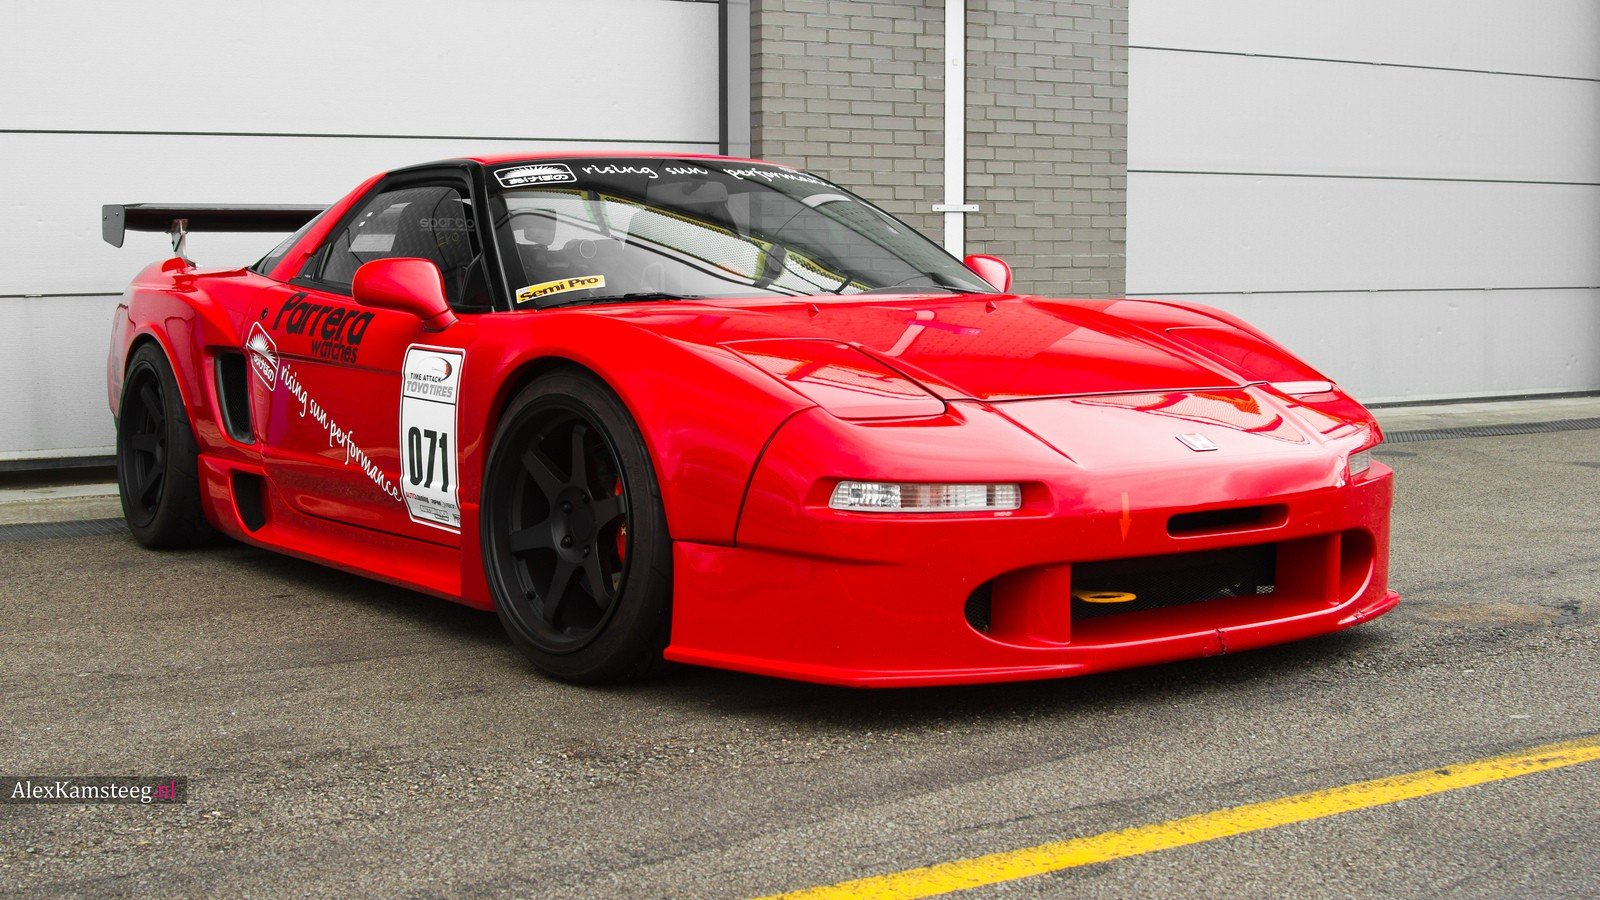 Cars Honda Nsx Tuning Drift Wallpaper 1600x900 333536